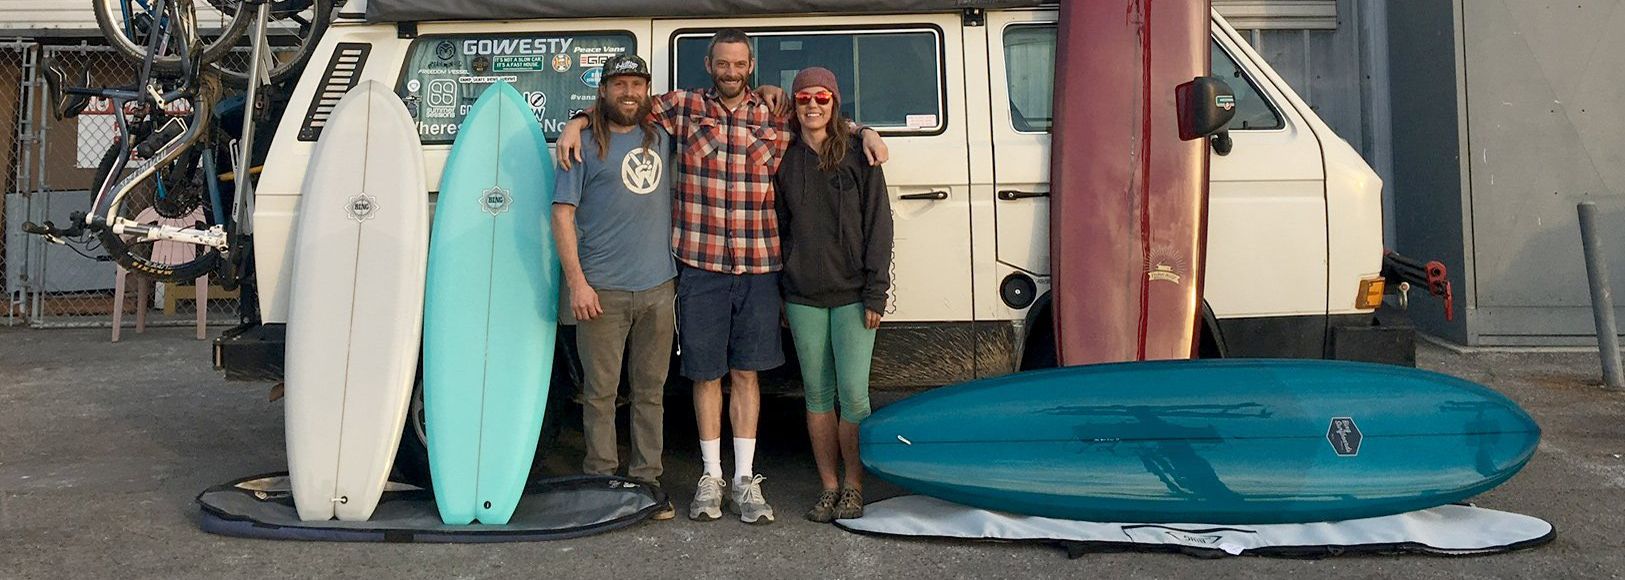 Adventure to Baja with Where's My Office Now + Bing Surfboards + Go Westy Campers